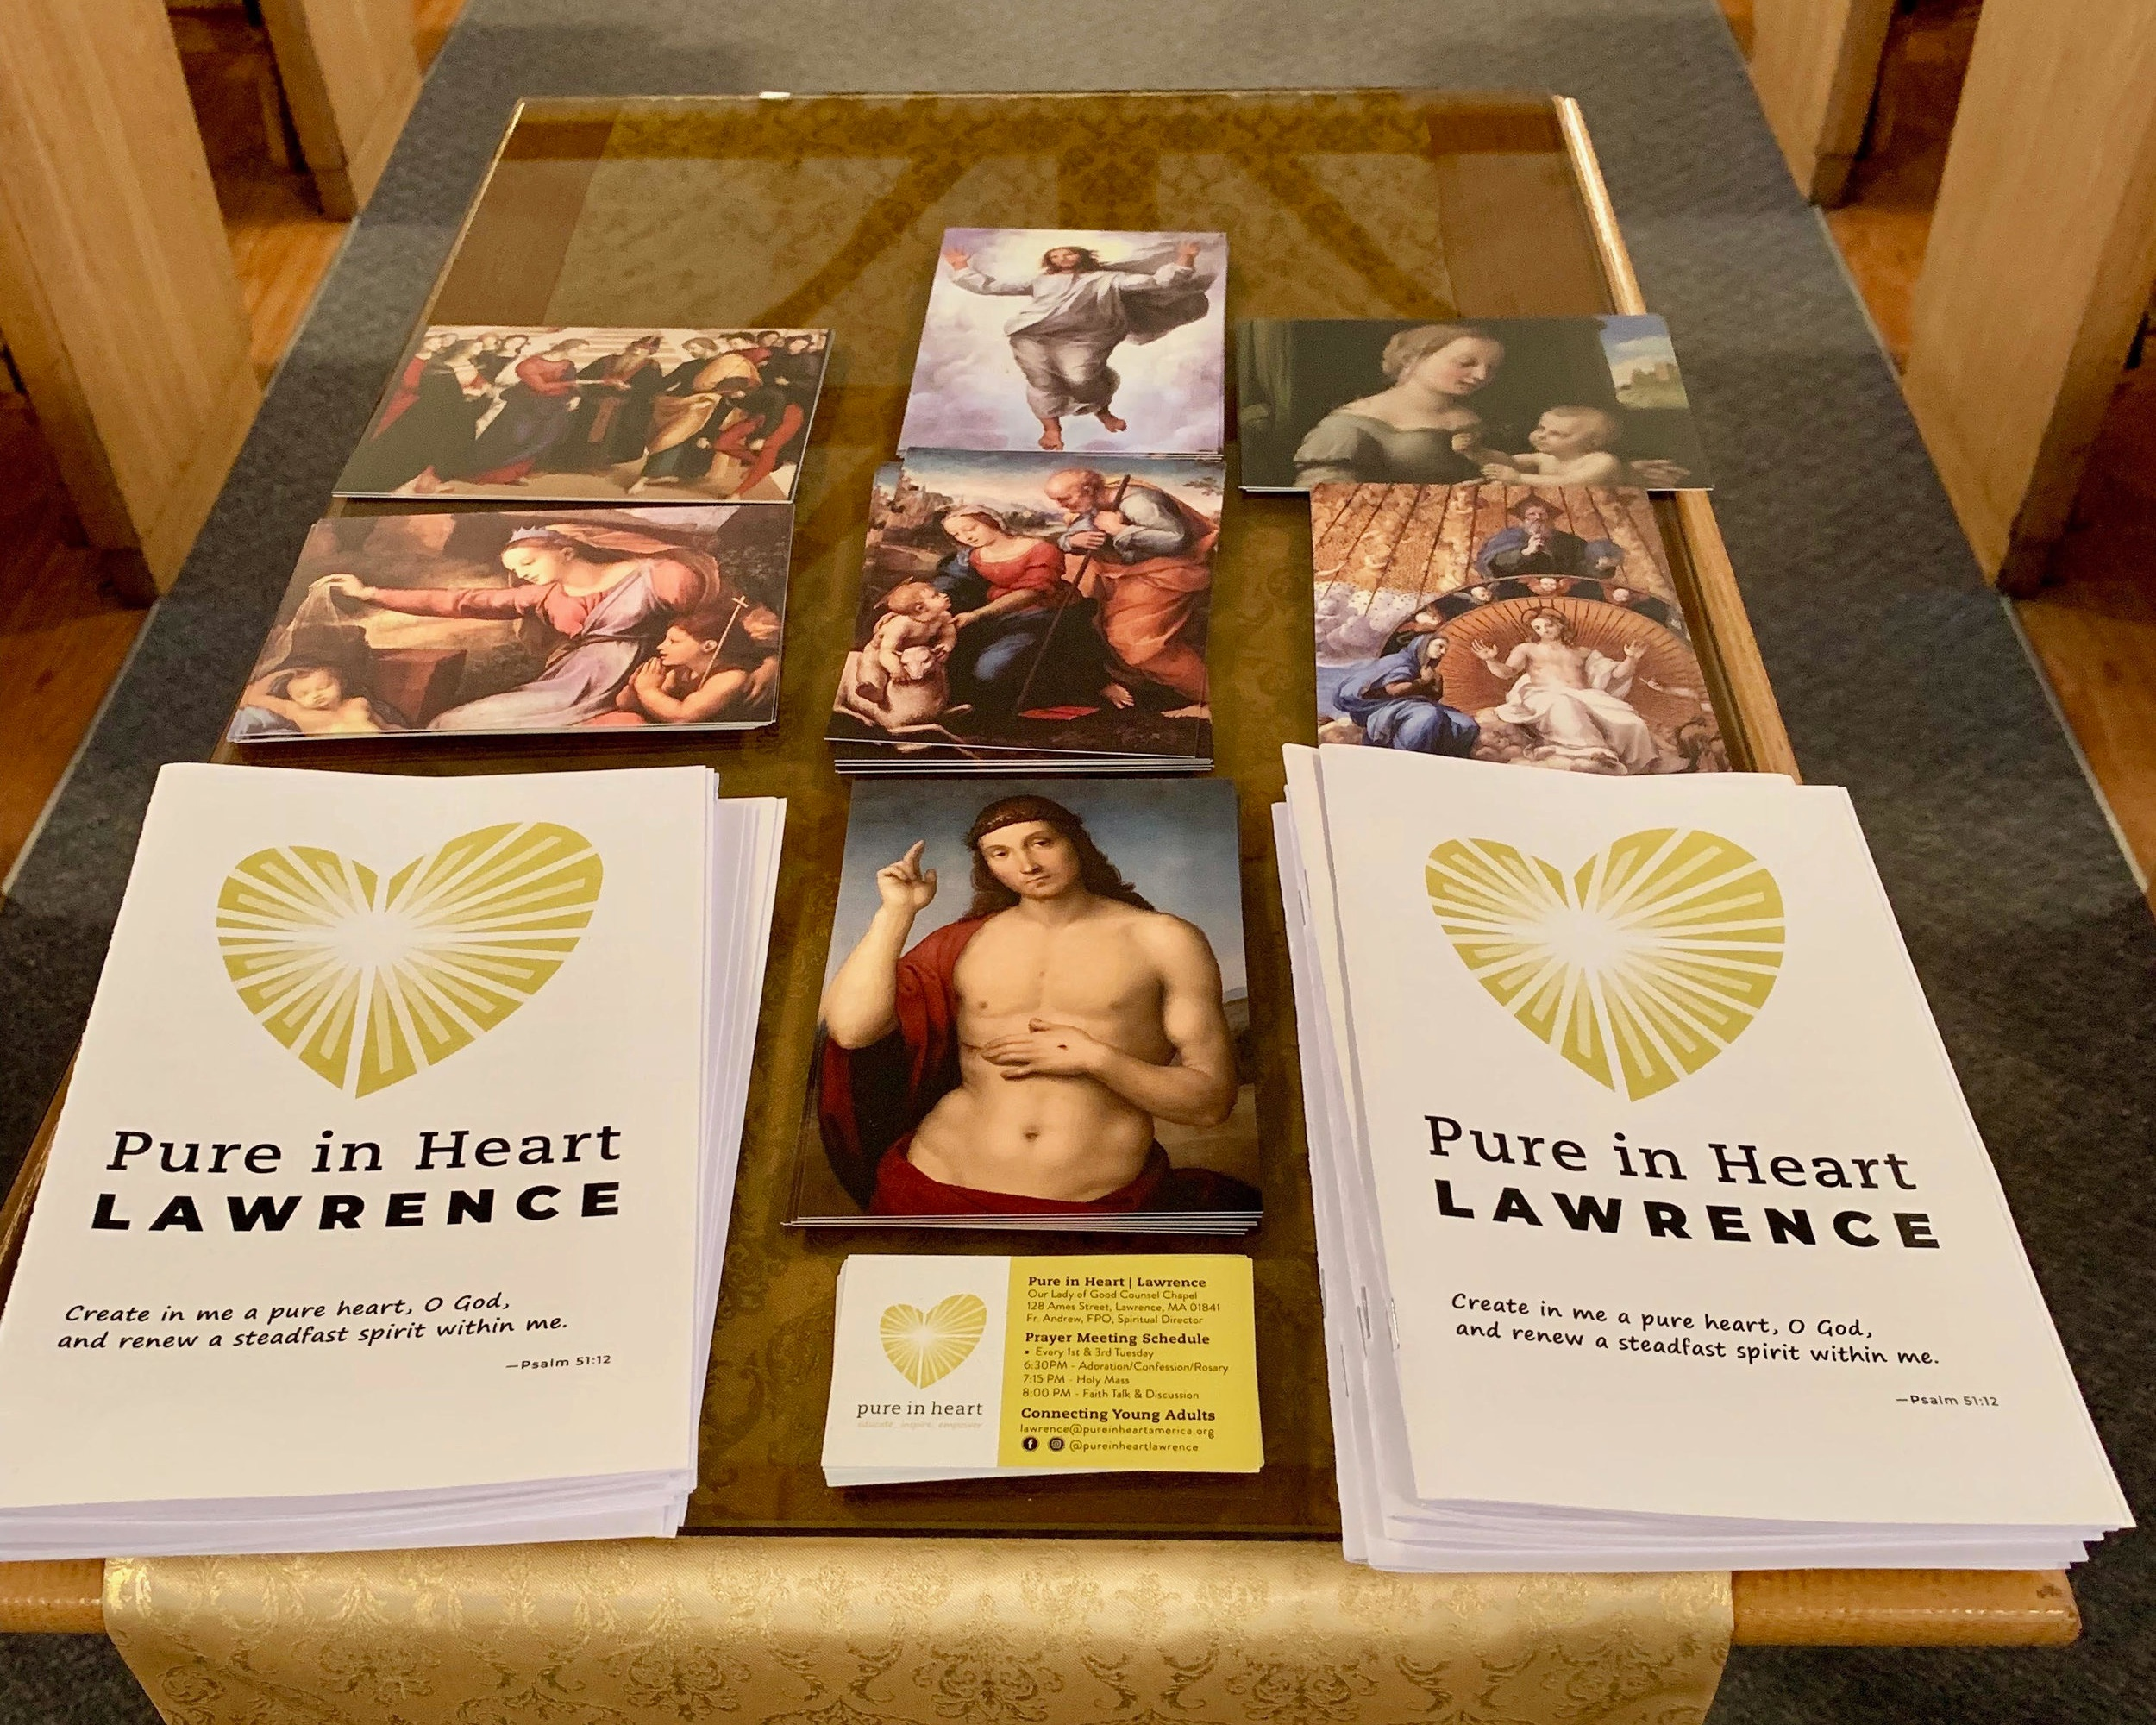 prayer cards and booklets for PIH Lawrence.jpg